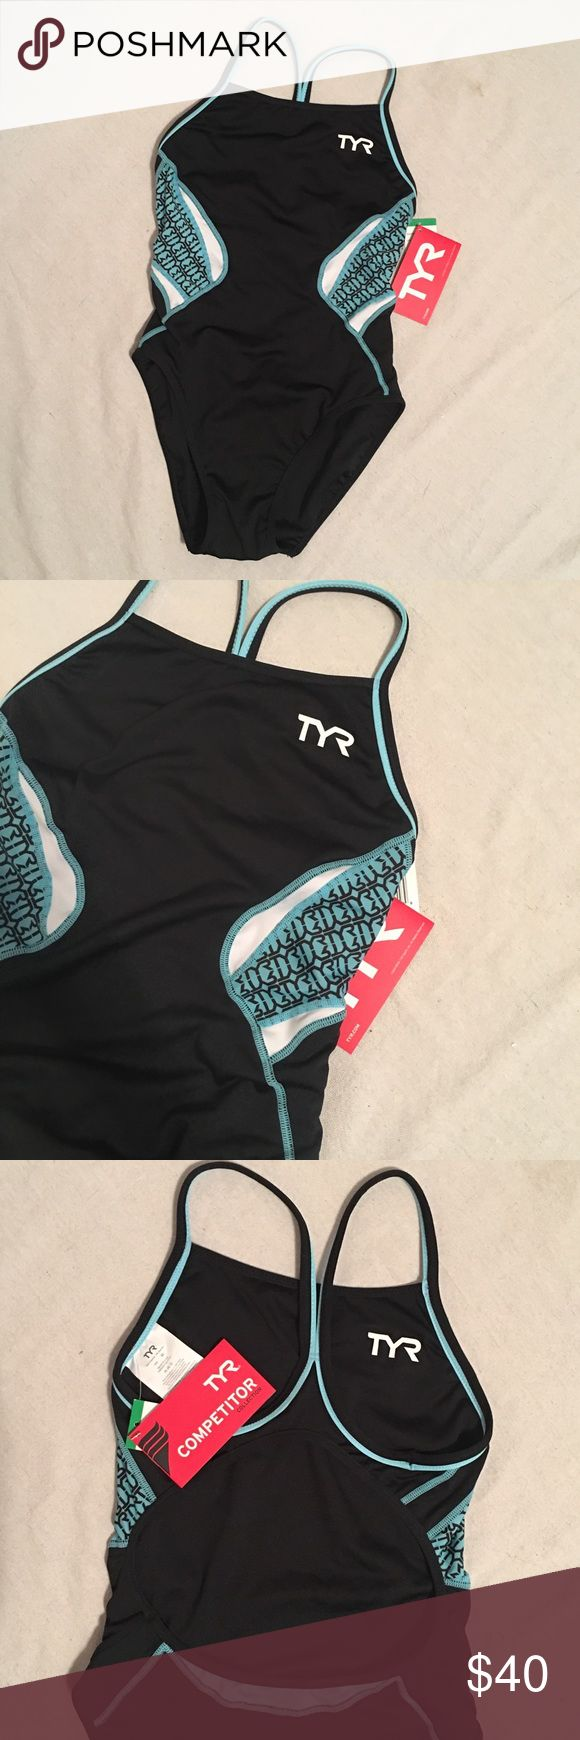 TYR Triathlon Competitor Reversible One Piece NWT TYR Triathlon Competitor Thin Strap Reversible One Piece is engineered to meet the needs of triathlon training and racing. Designed for support, the criss-cross shoulder straps allow for full range of motion and an open back for reduced bulk. Quick drying performance and maximized range of motion. Two suits in one, this suit can be reversed to a solid or multi-color splice for two distinct looks. Feel free to make an offer using the offer…